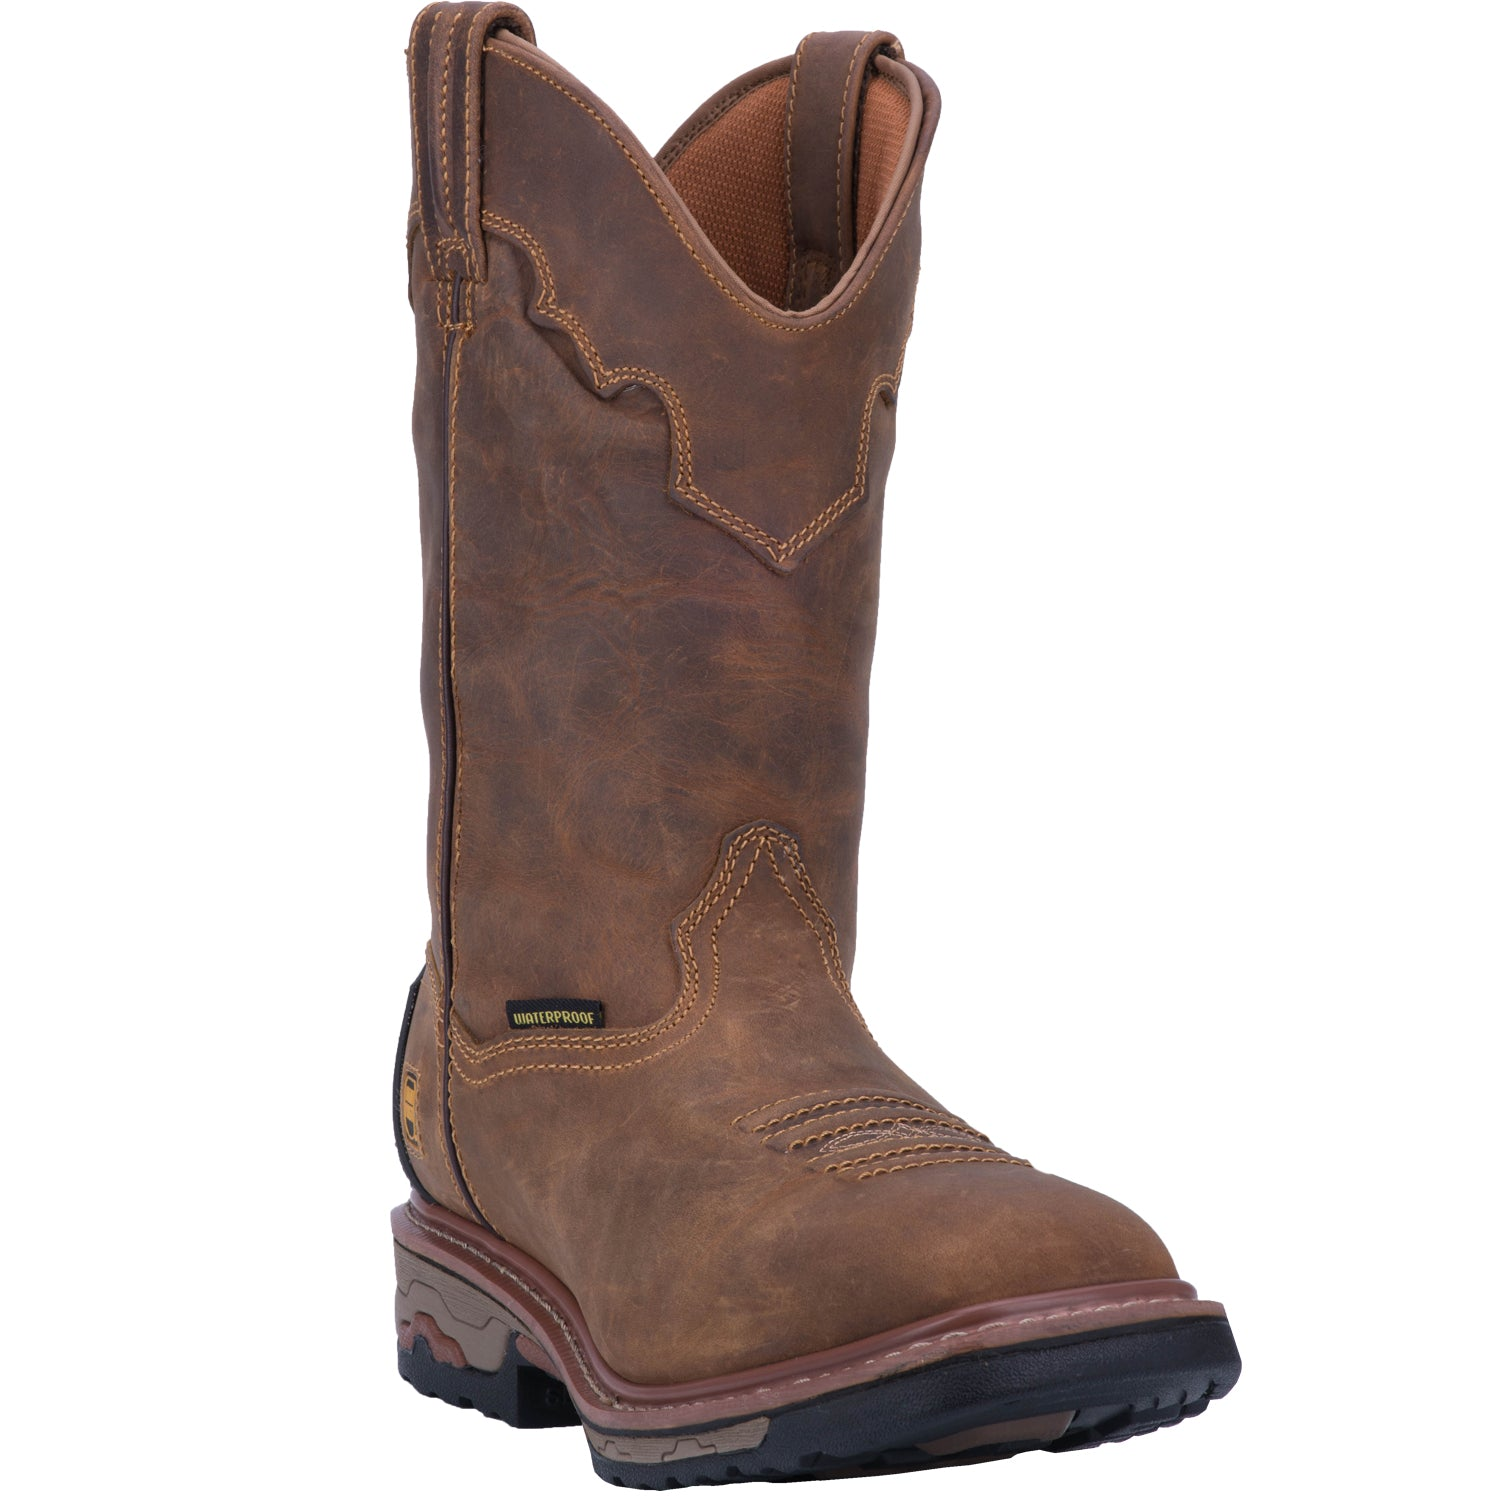 BLAYDE- WATERPROOF LEATHER BOOT 4194435465258